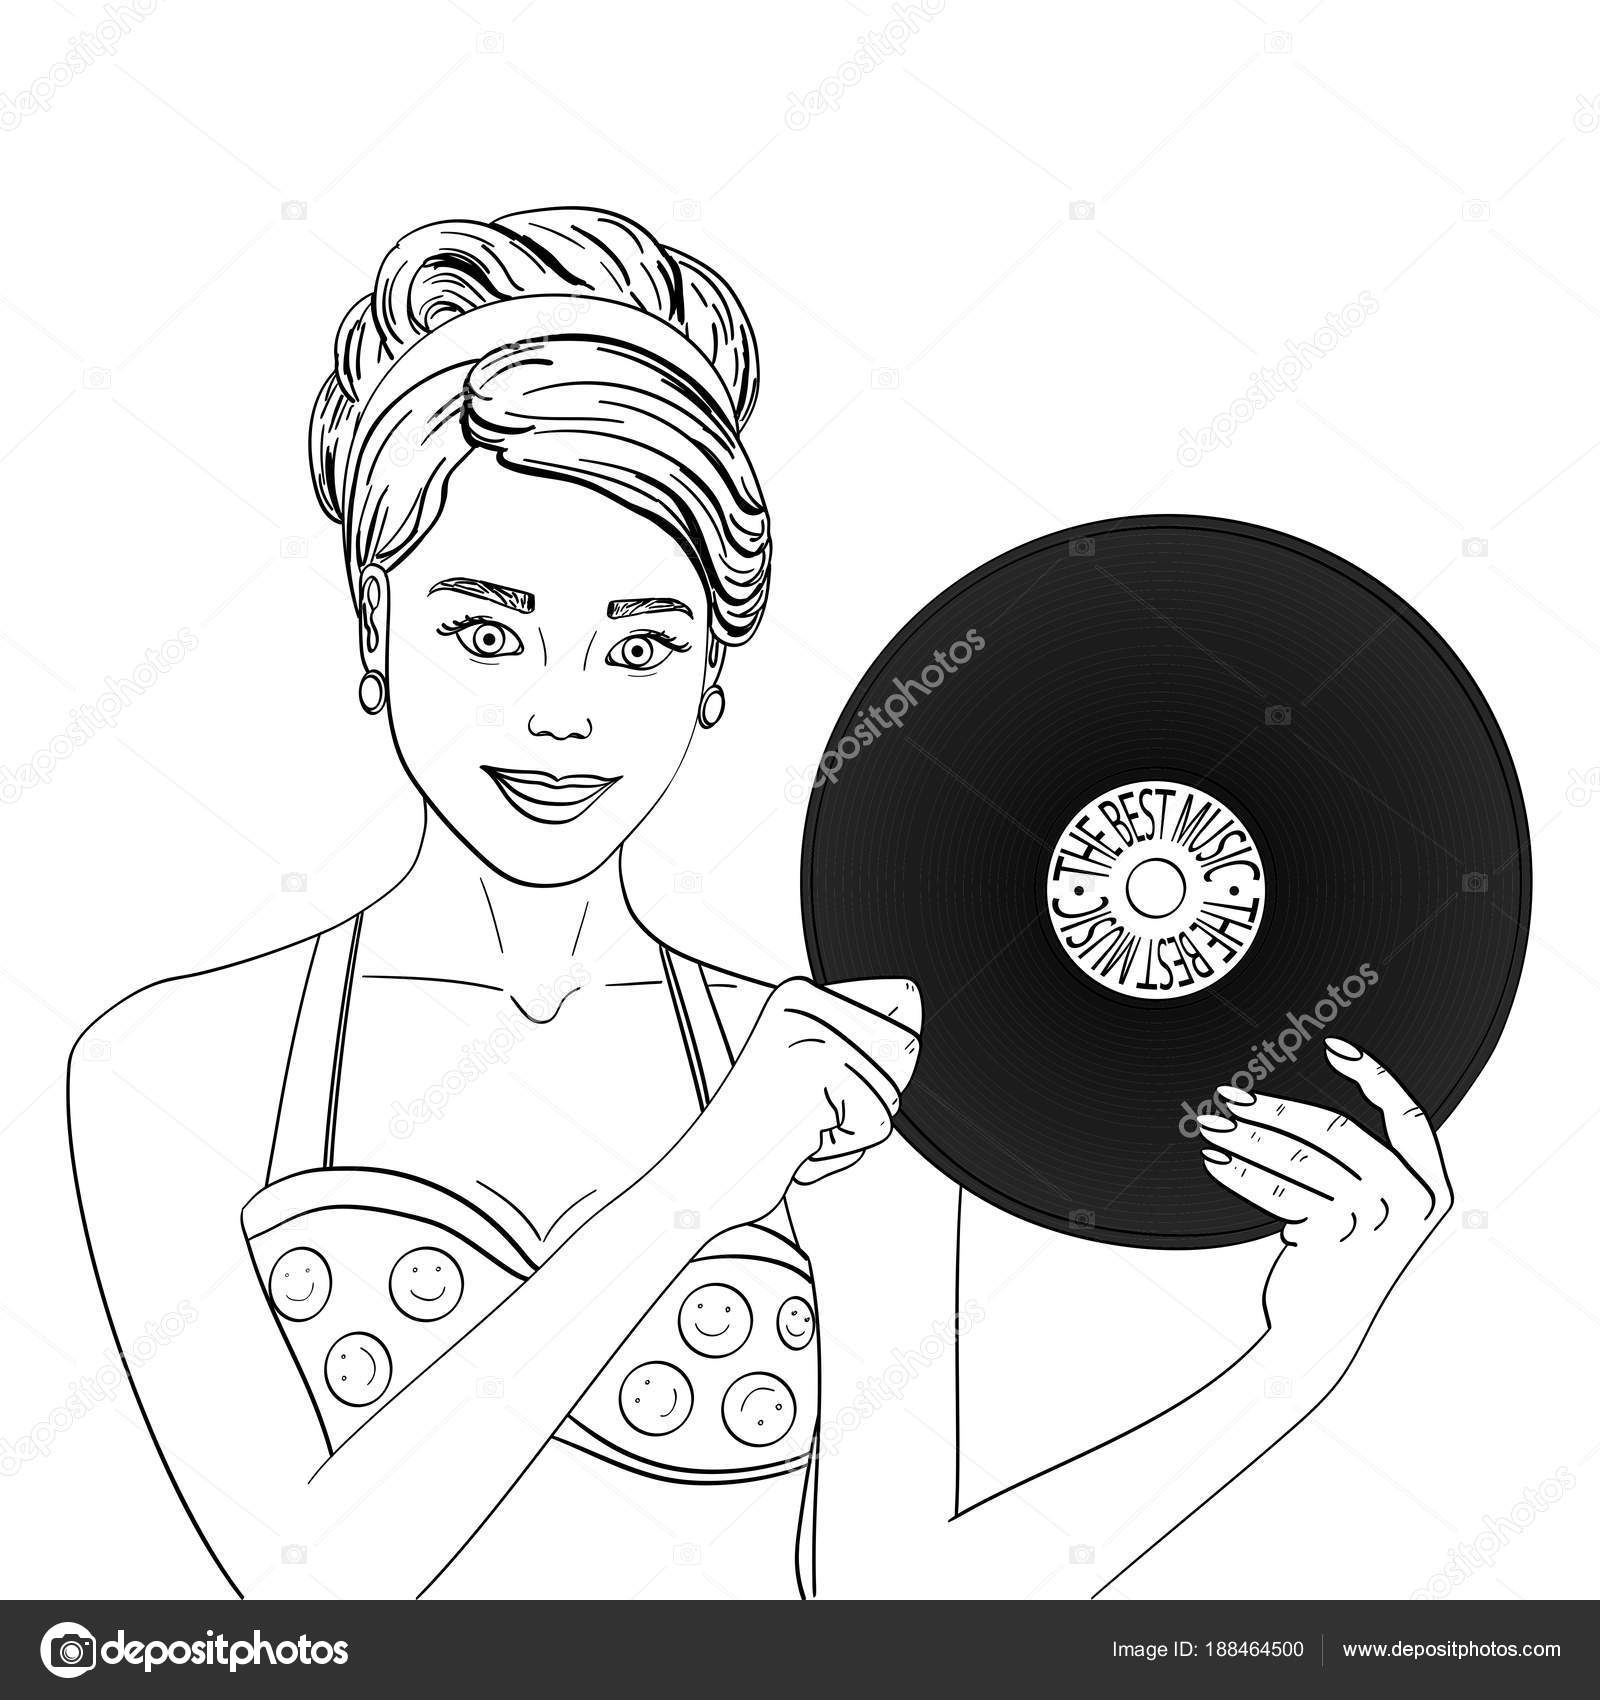 660 Coloring Book Record Best HD